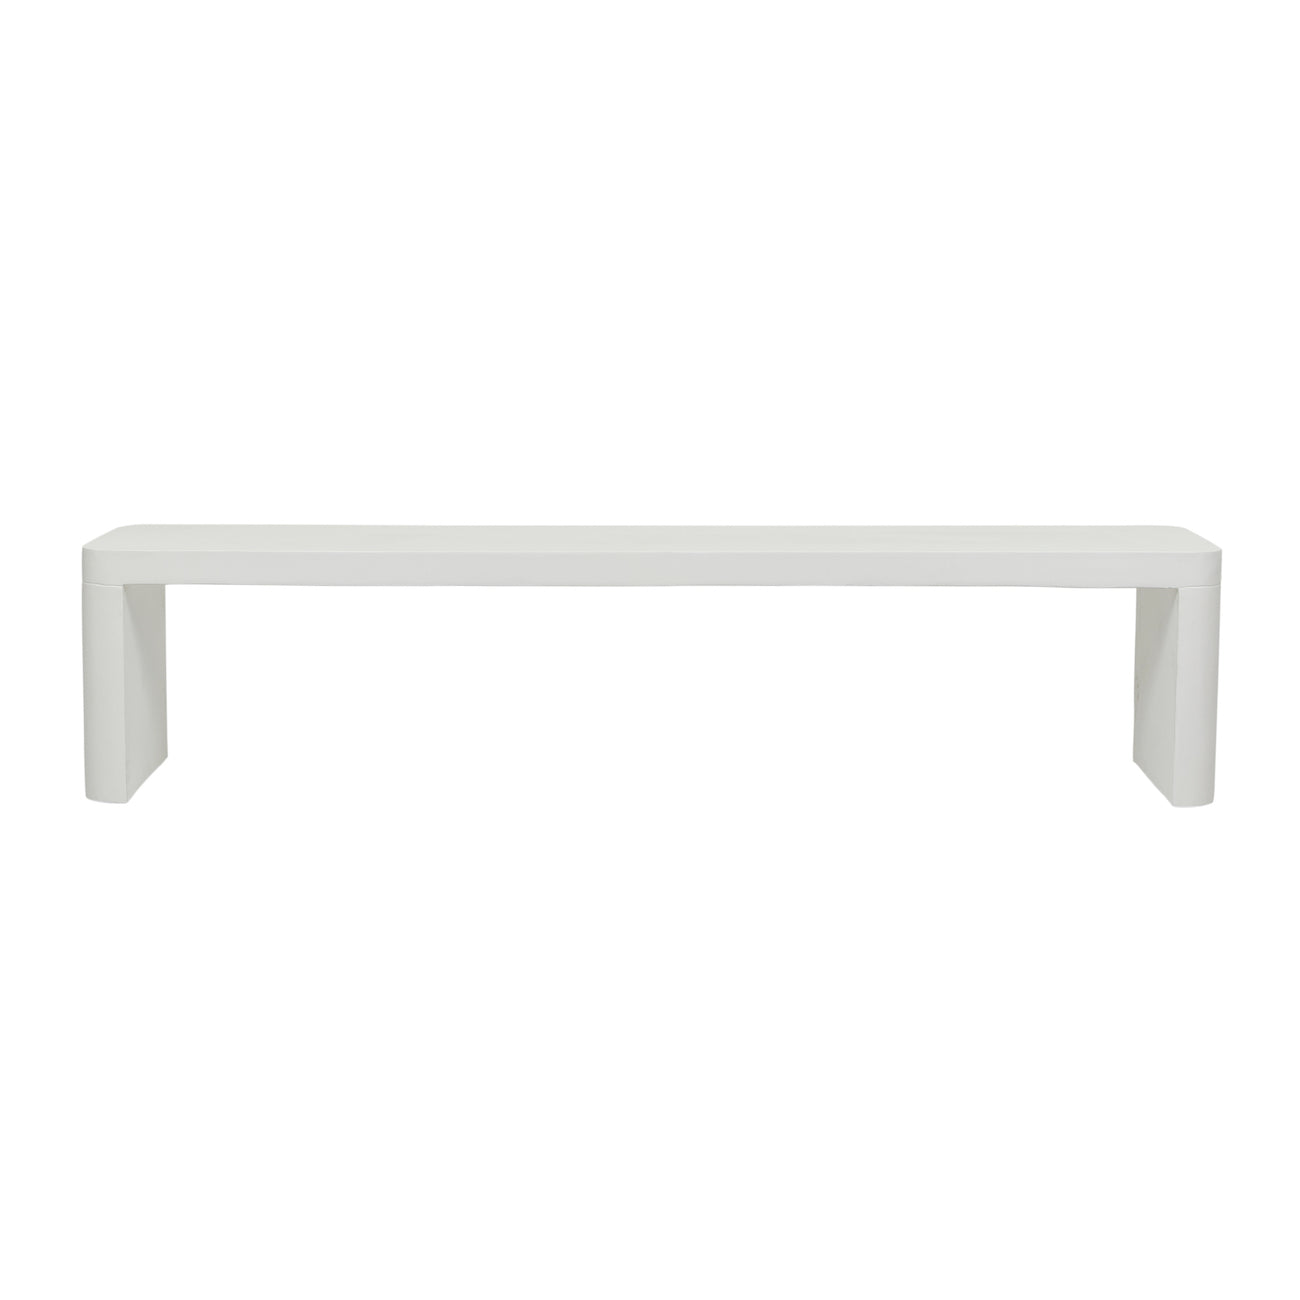 Ossa Cube Patio Bench Seat | White